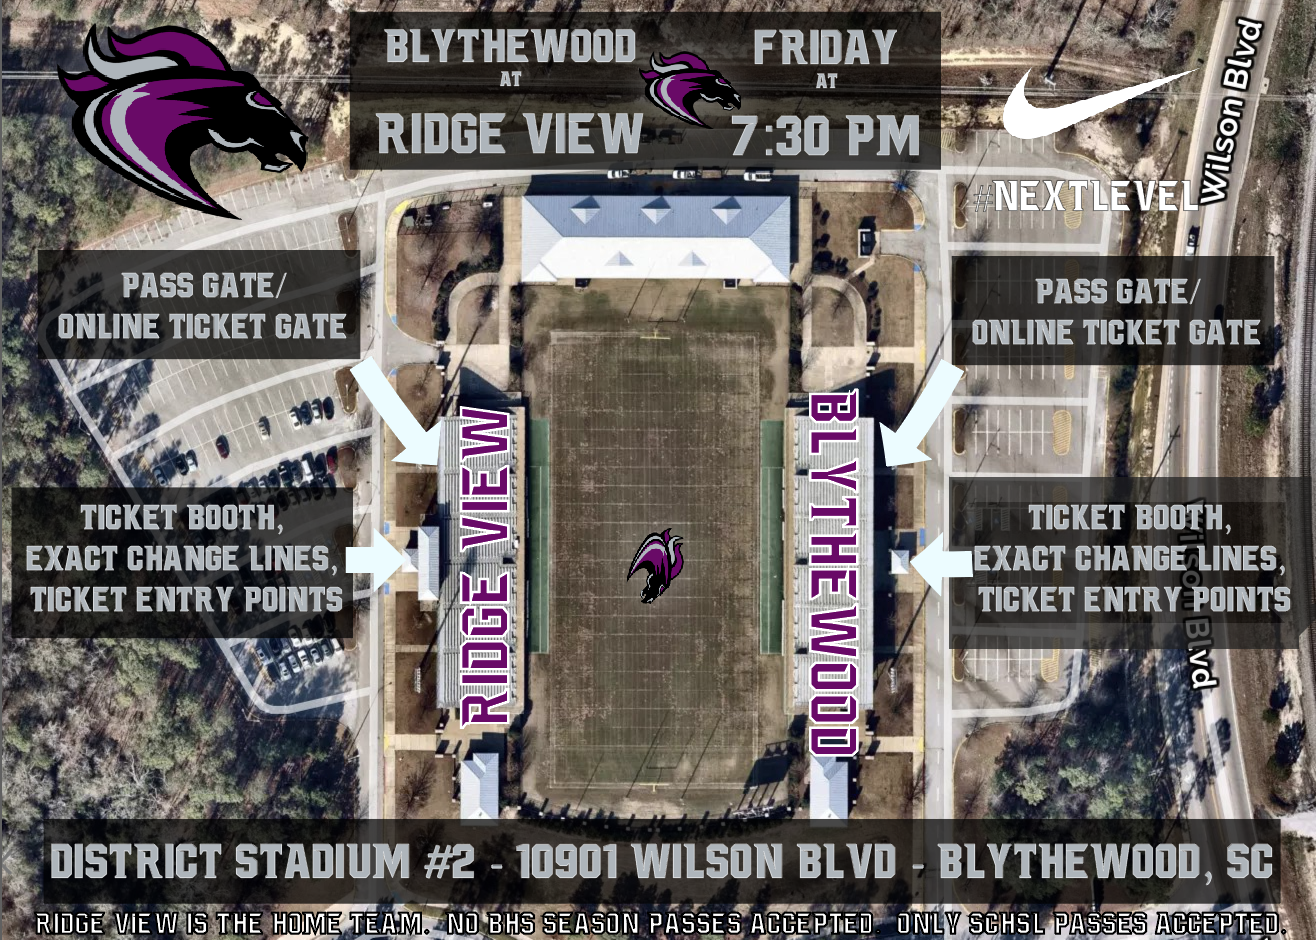 Ridge View vs. Blythewood Football Tickets On Sale Now!